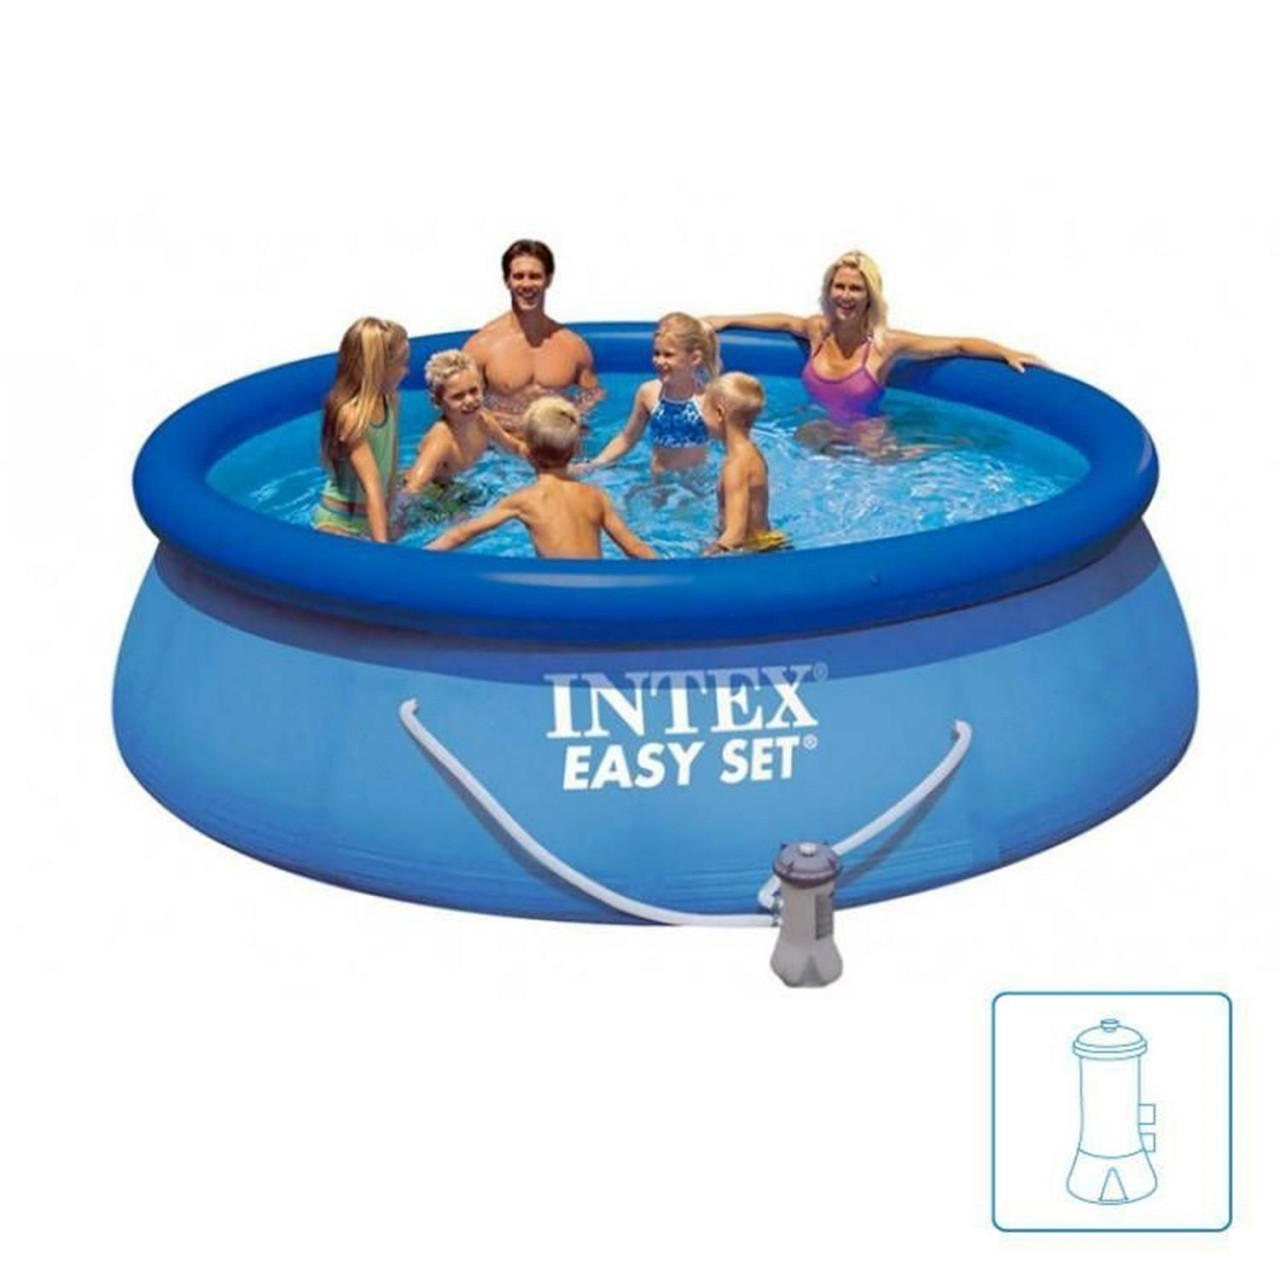 Pool Solarheizung Welche Pumpe Intex Easy Set 28122 Swimming Pool Set 305x76cm Planschbecken Mit